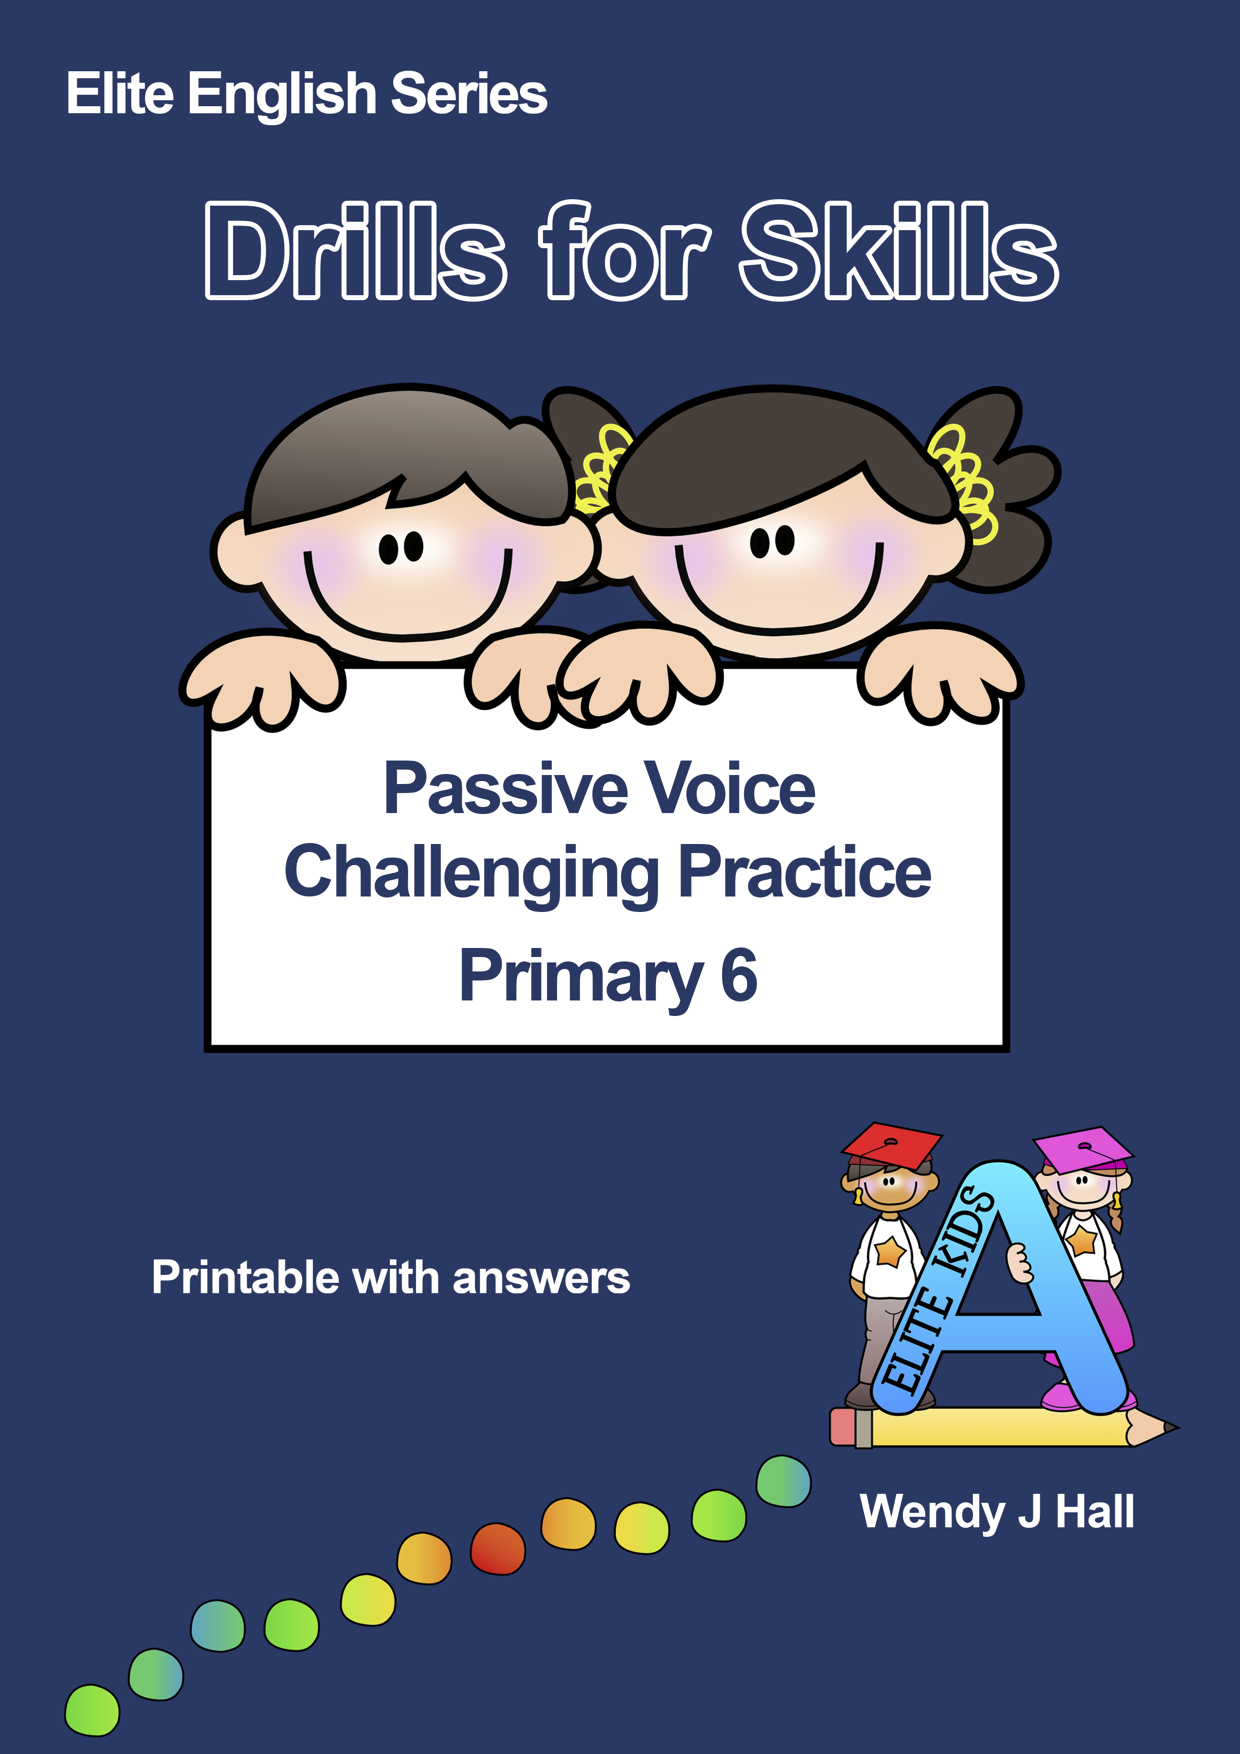 Drills for Skills - Passive Voice Challenging Practice